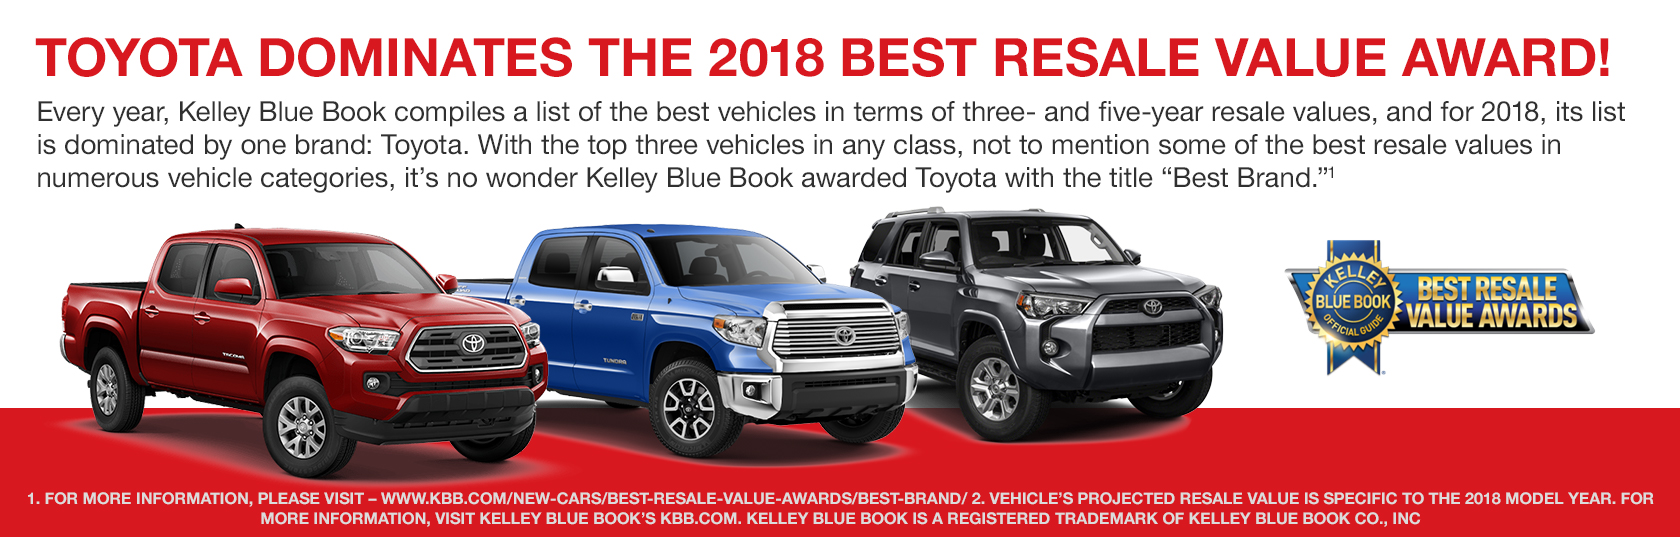 Kbb Award Toyota Of North Charleston Sc